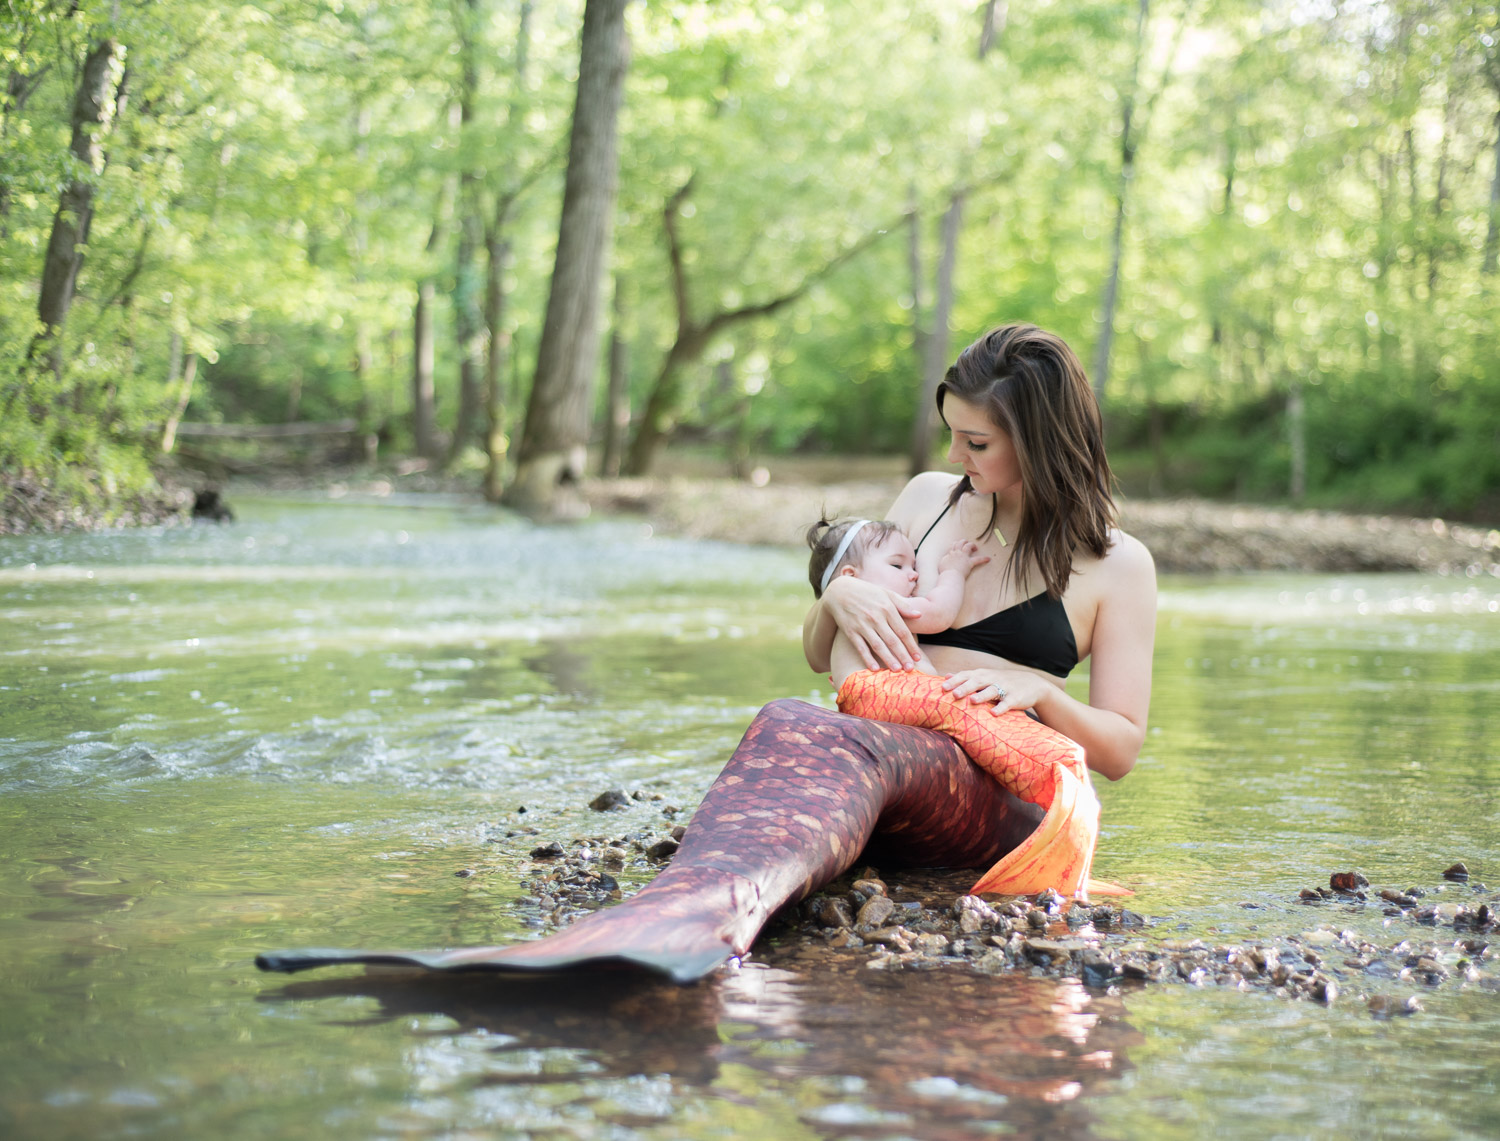 Mermaid breastfeeding pictures // www.dphillipsphotography.com/blog